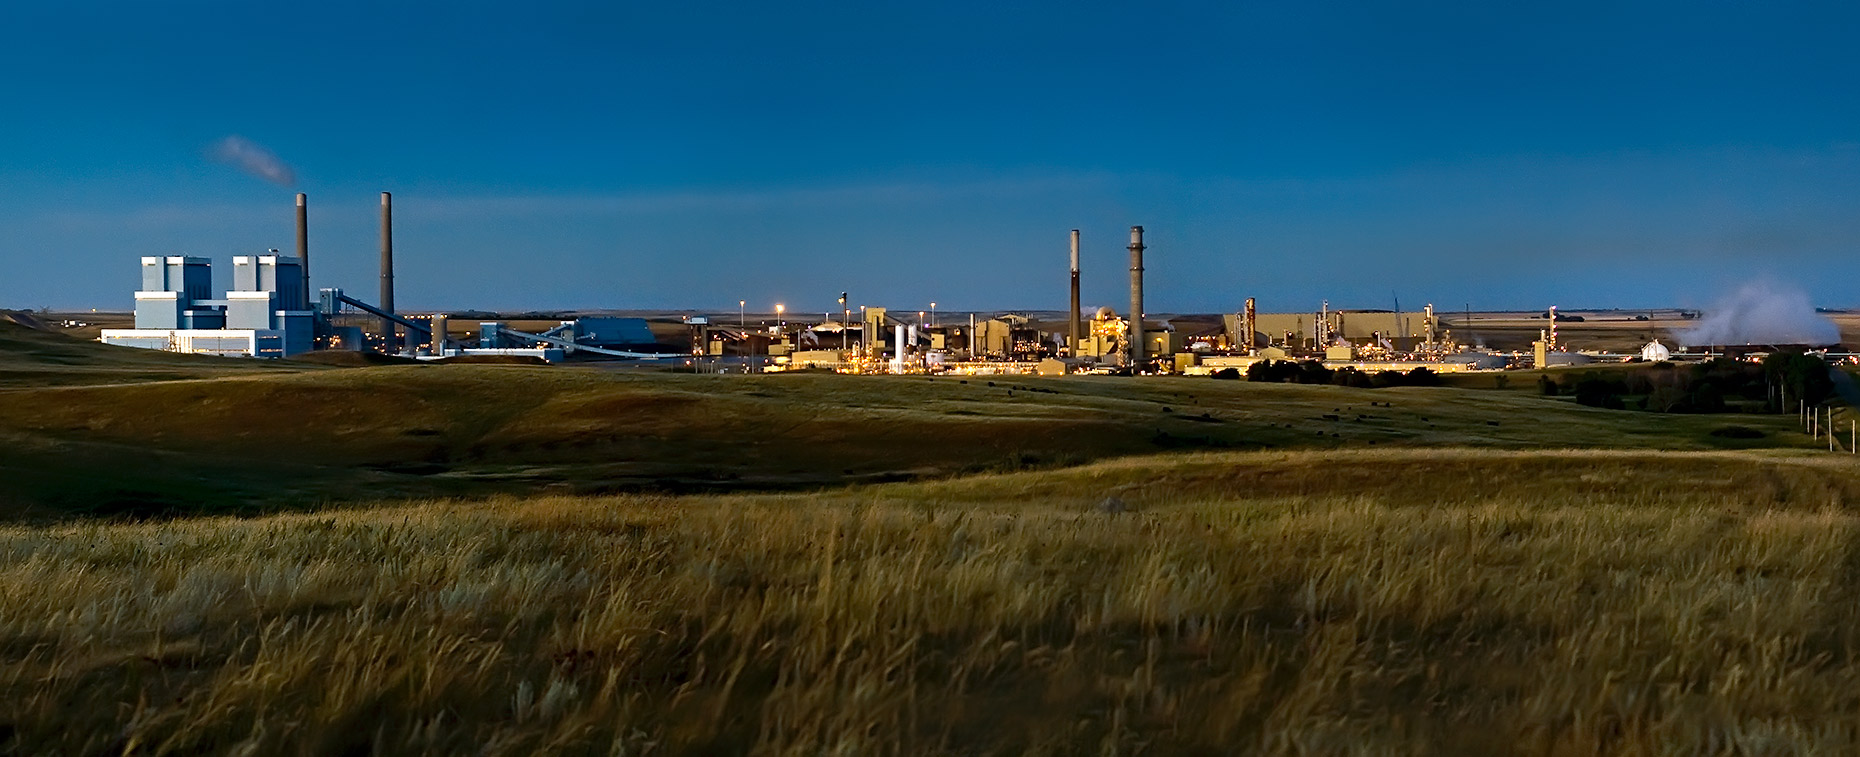 A photo of  Antelope Valley Power Plant and Great Plains Synfuels Plant by North Dakota commercial photographer Dan Koeck.